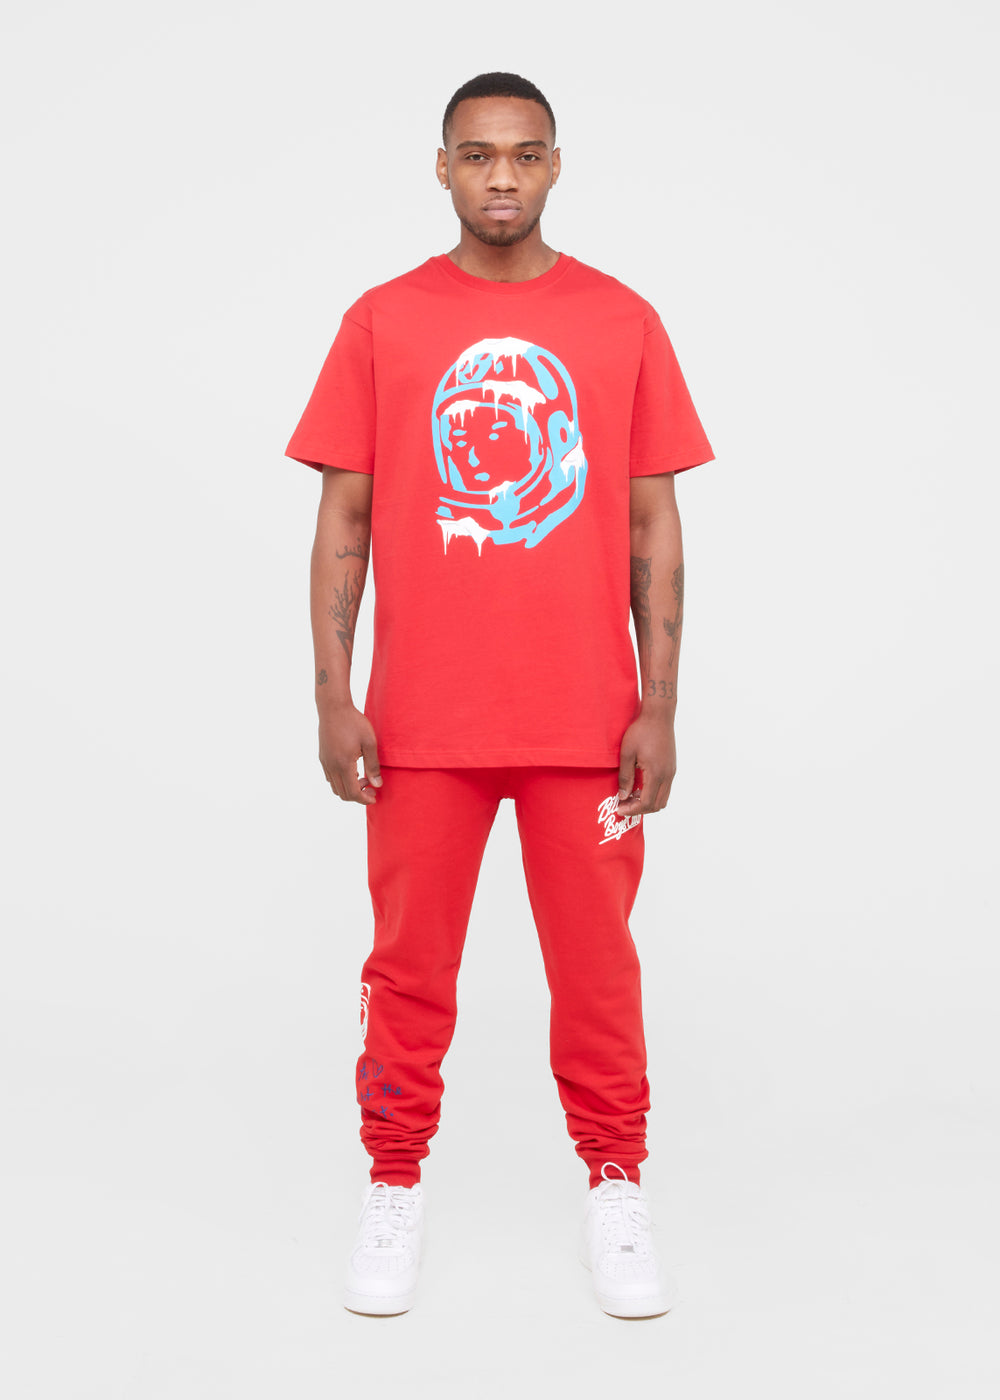 billionaire-boys-club-bbc-av-hlmt-tee-891-8208-red-red-4